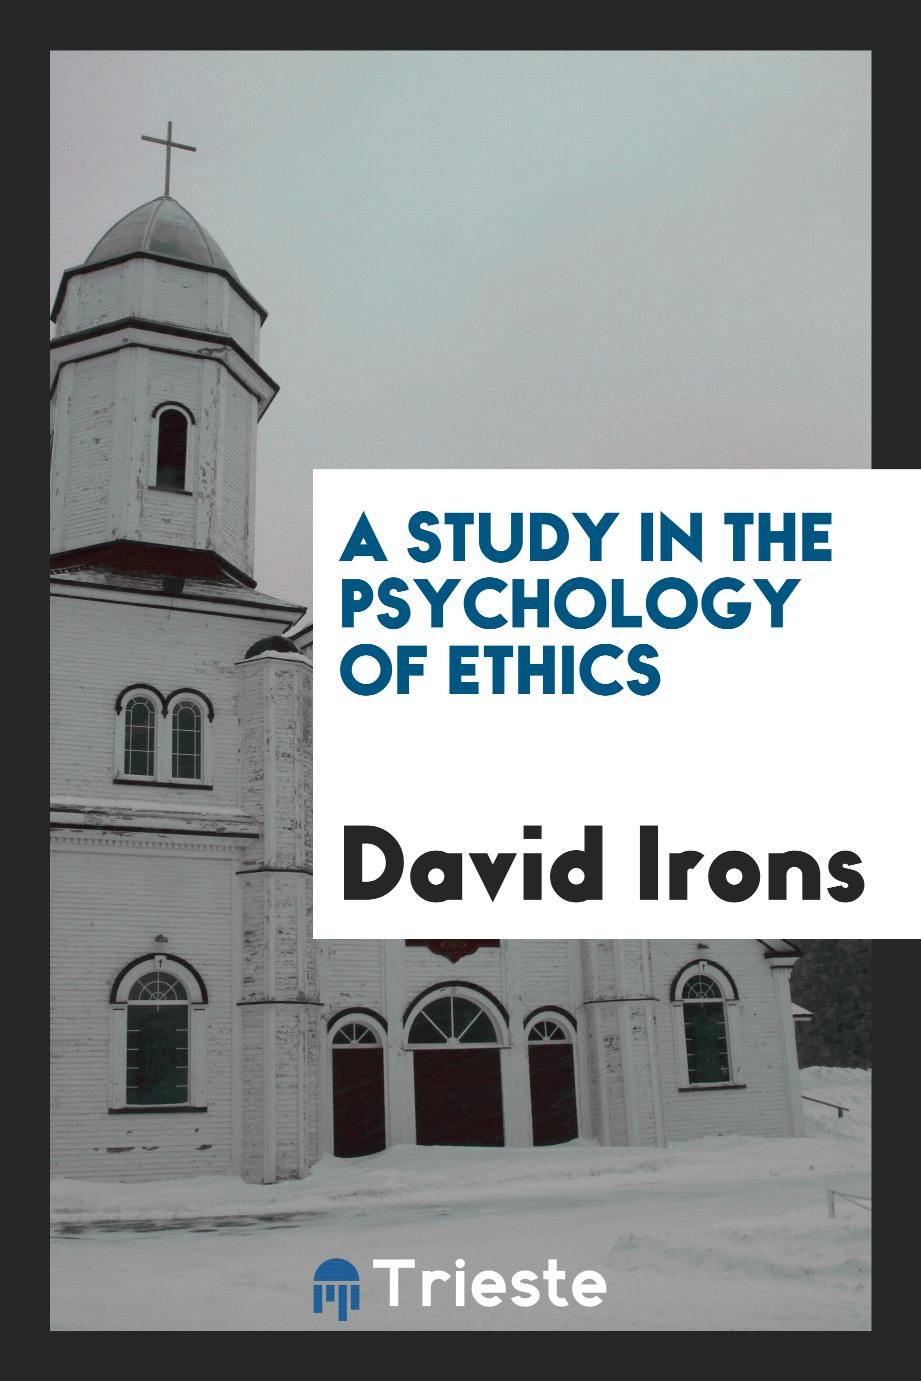 A Study in the Psychology of Ethics